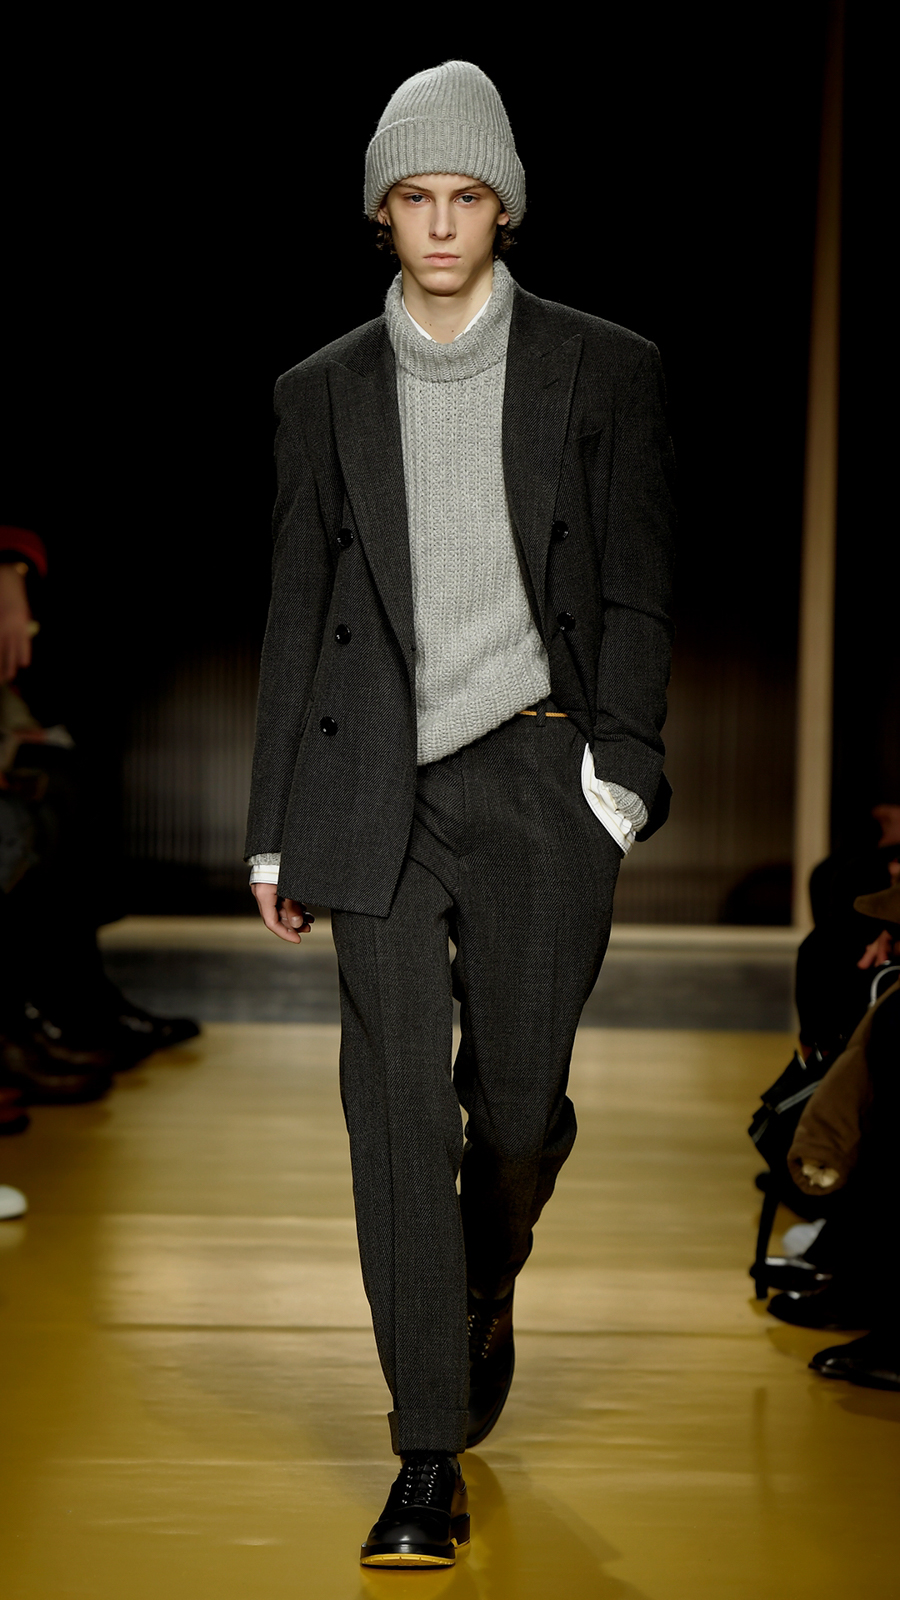 BOSS Menswear Fall Winter 2018 Fashion Show Sports Tailoring. First slide  image. Second slide image 80a8391284